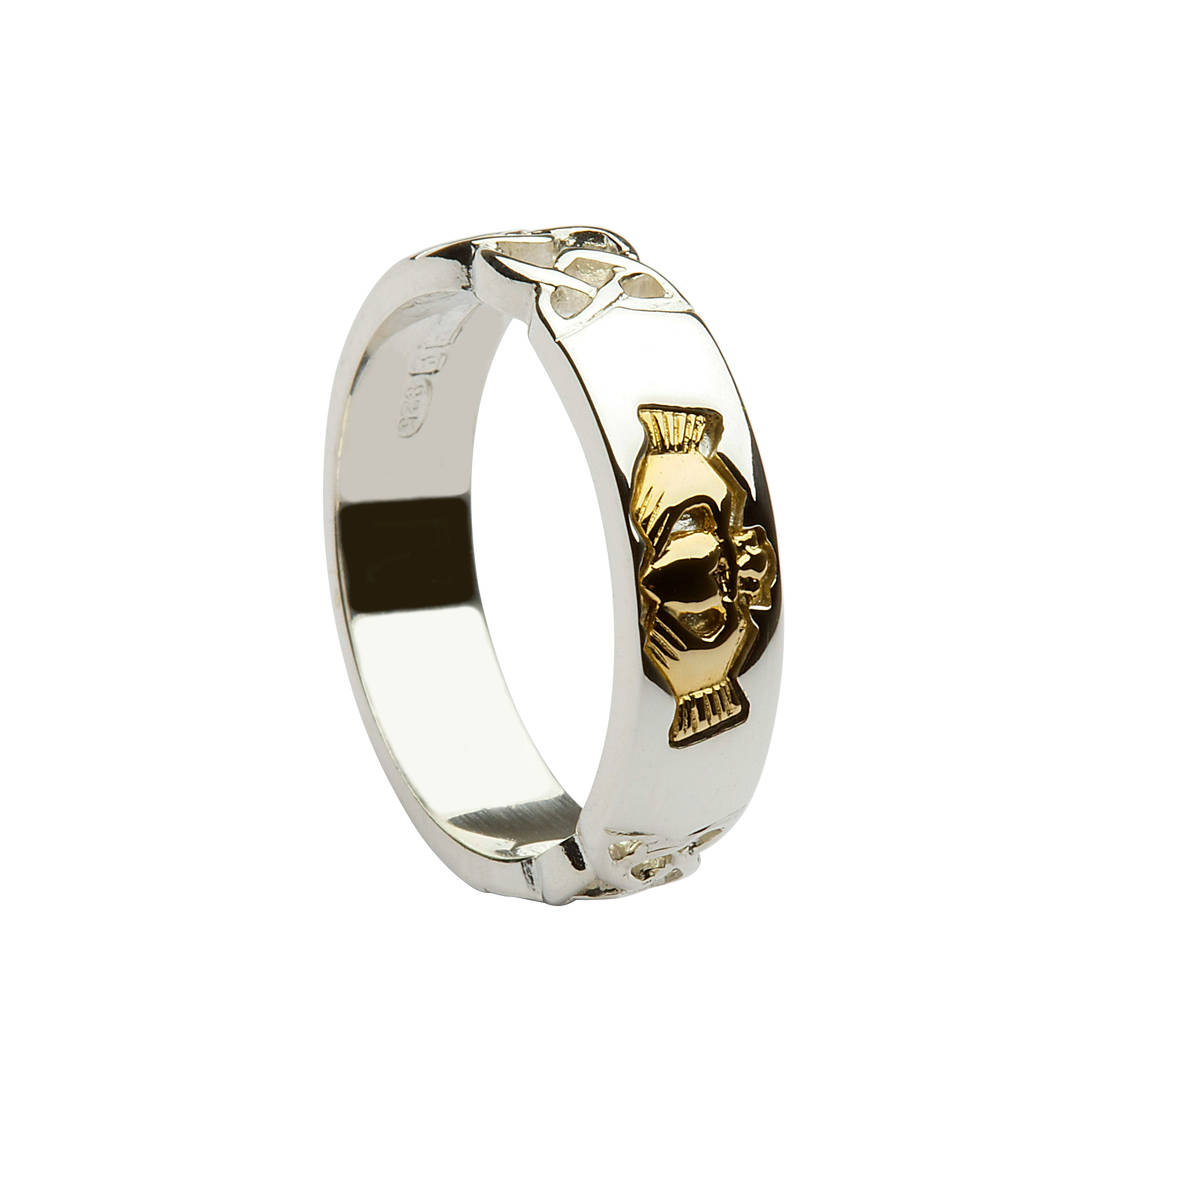 Silver ring with celtic knot shoulders and claddagh made of 14 carat gold.Amost desirable ring.